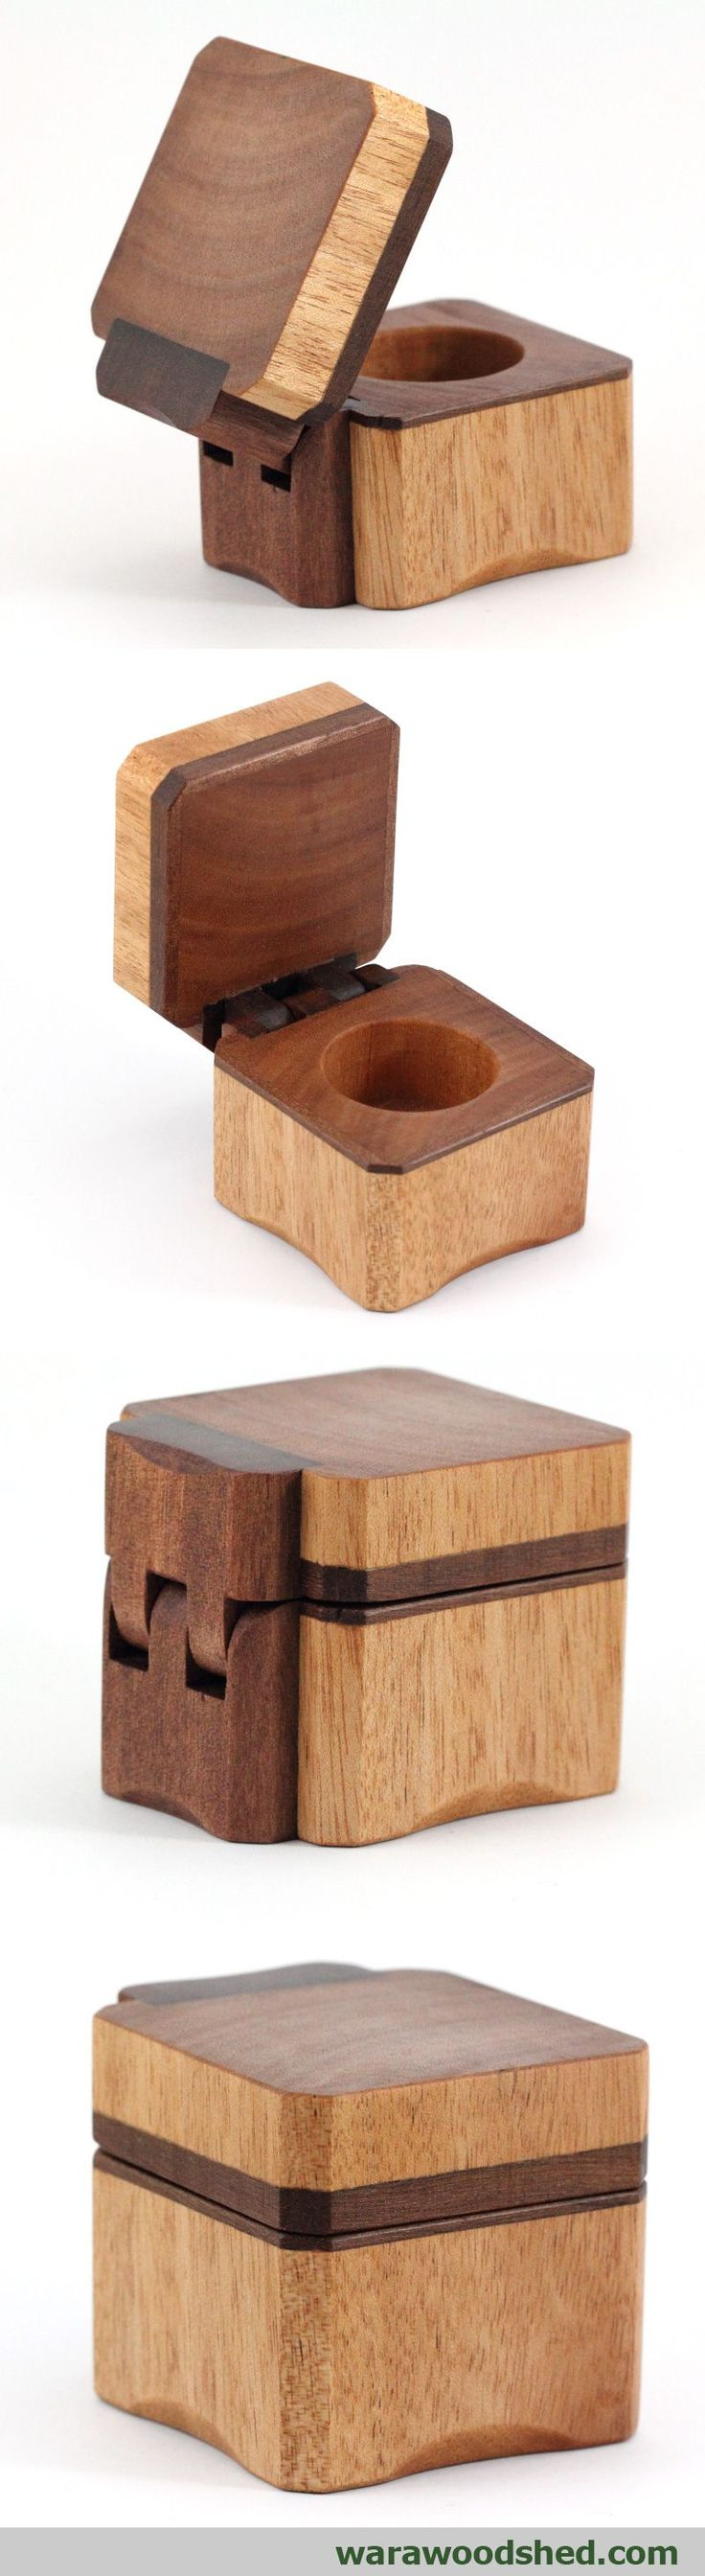 Looking to find advice about woodworking? http://www.woodesigner.net provides these things!